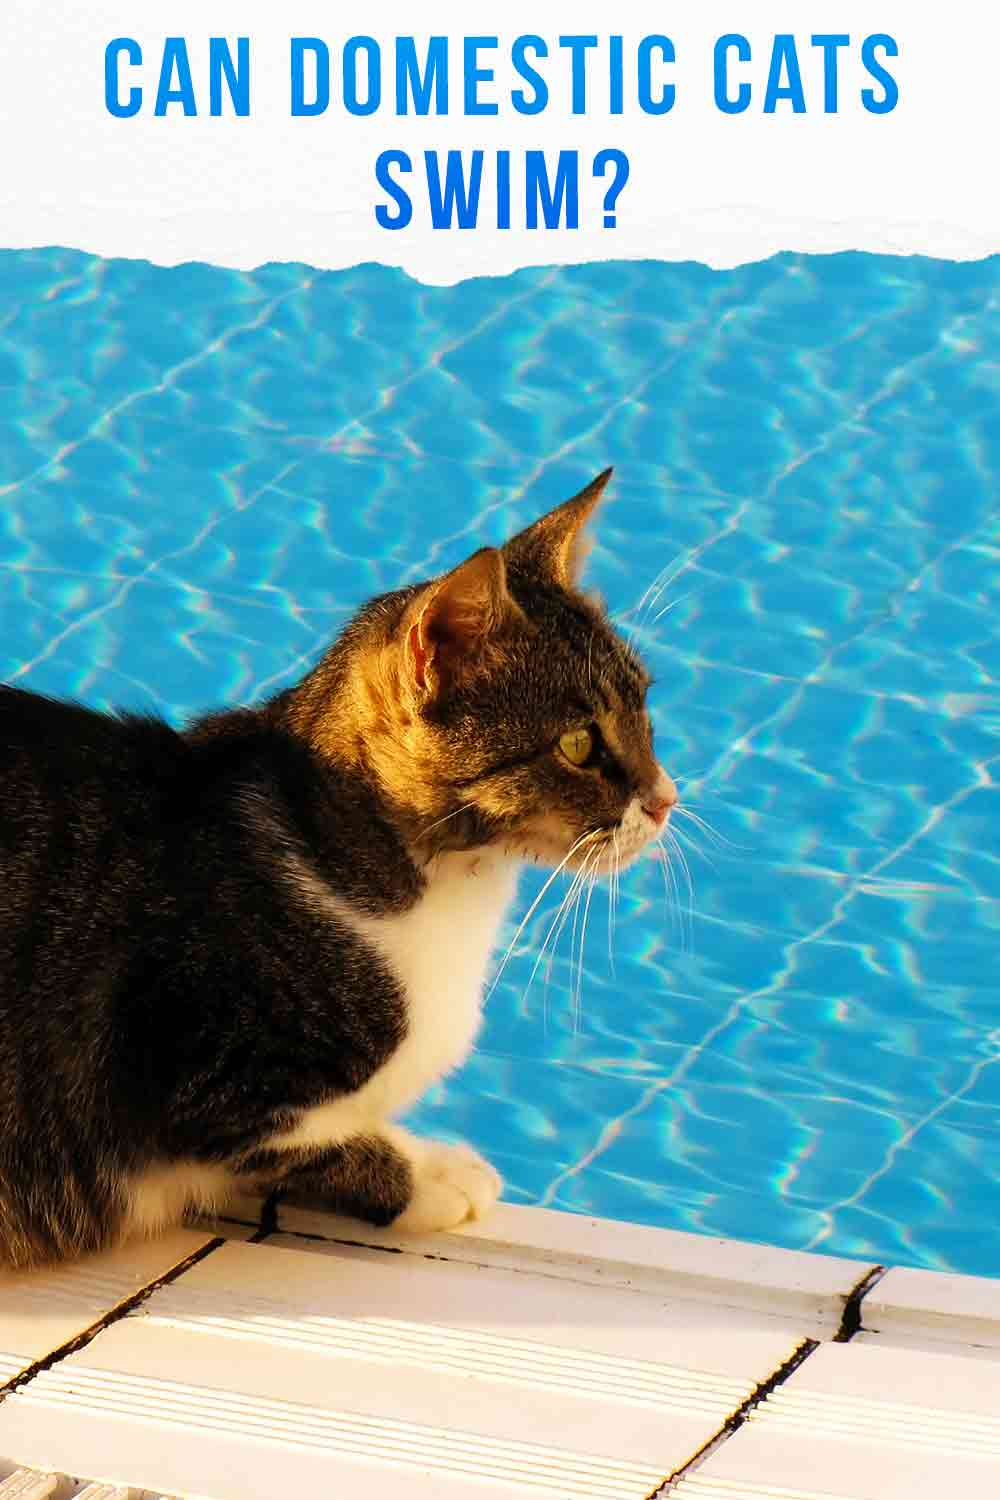 Can domestic cats swim?